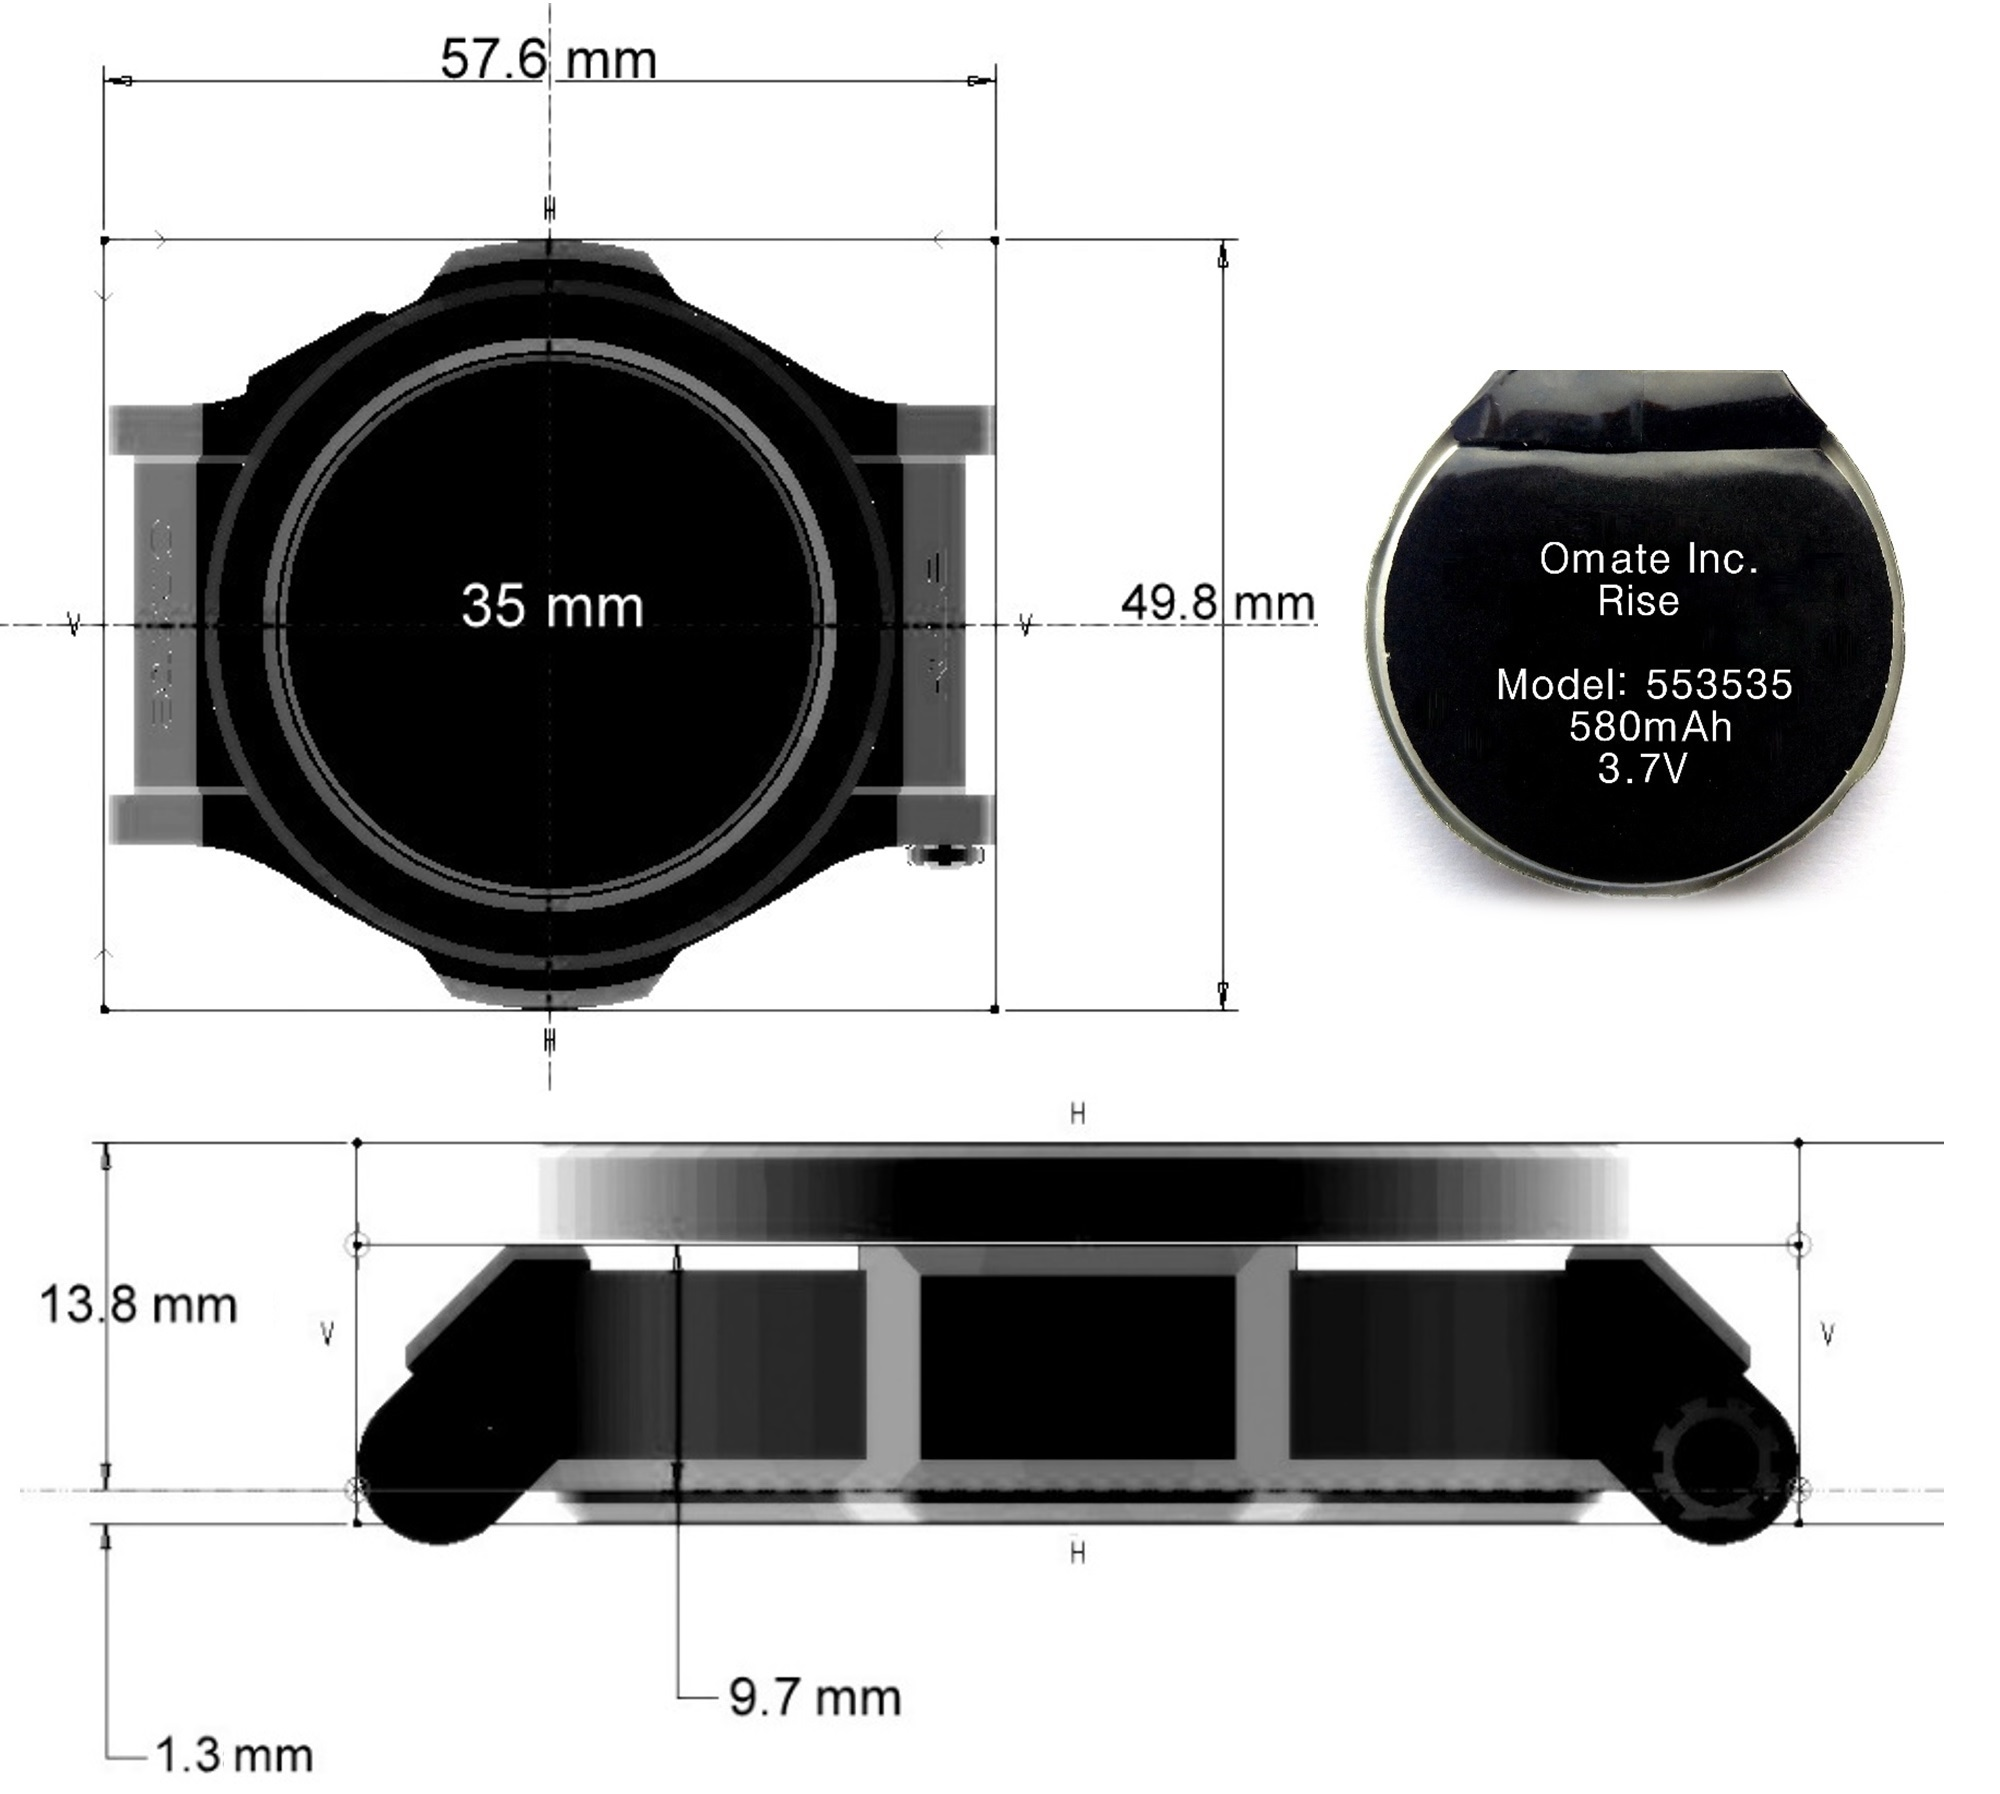 The smartwatch's architecture and size.